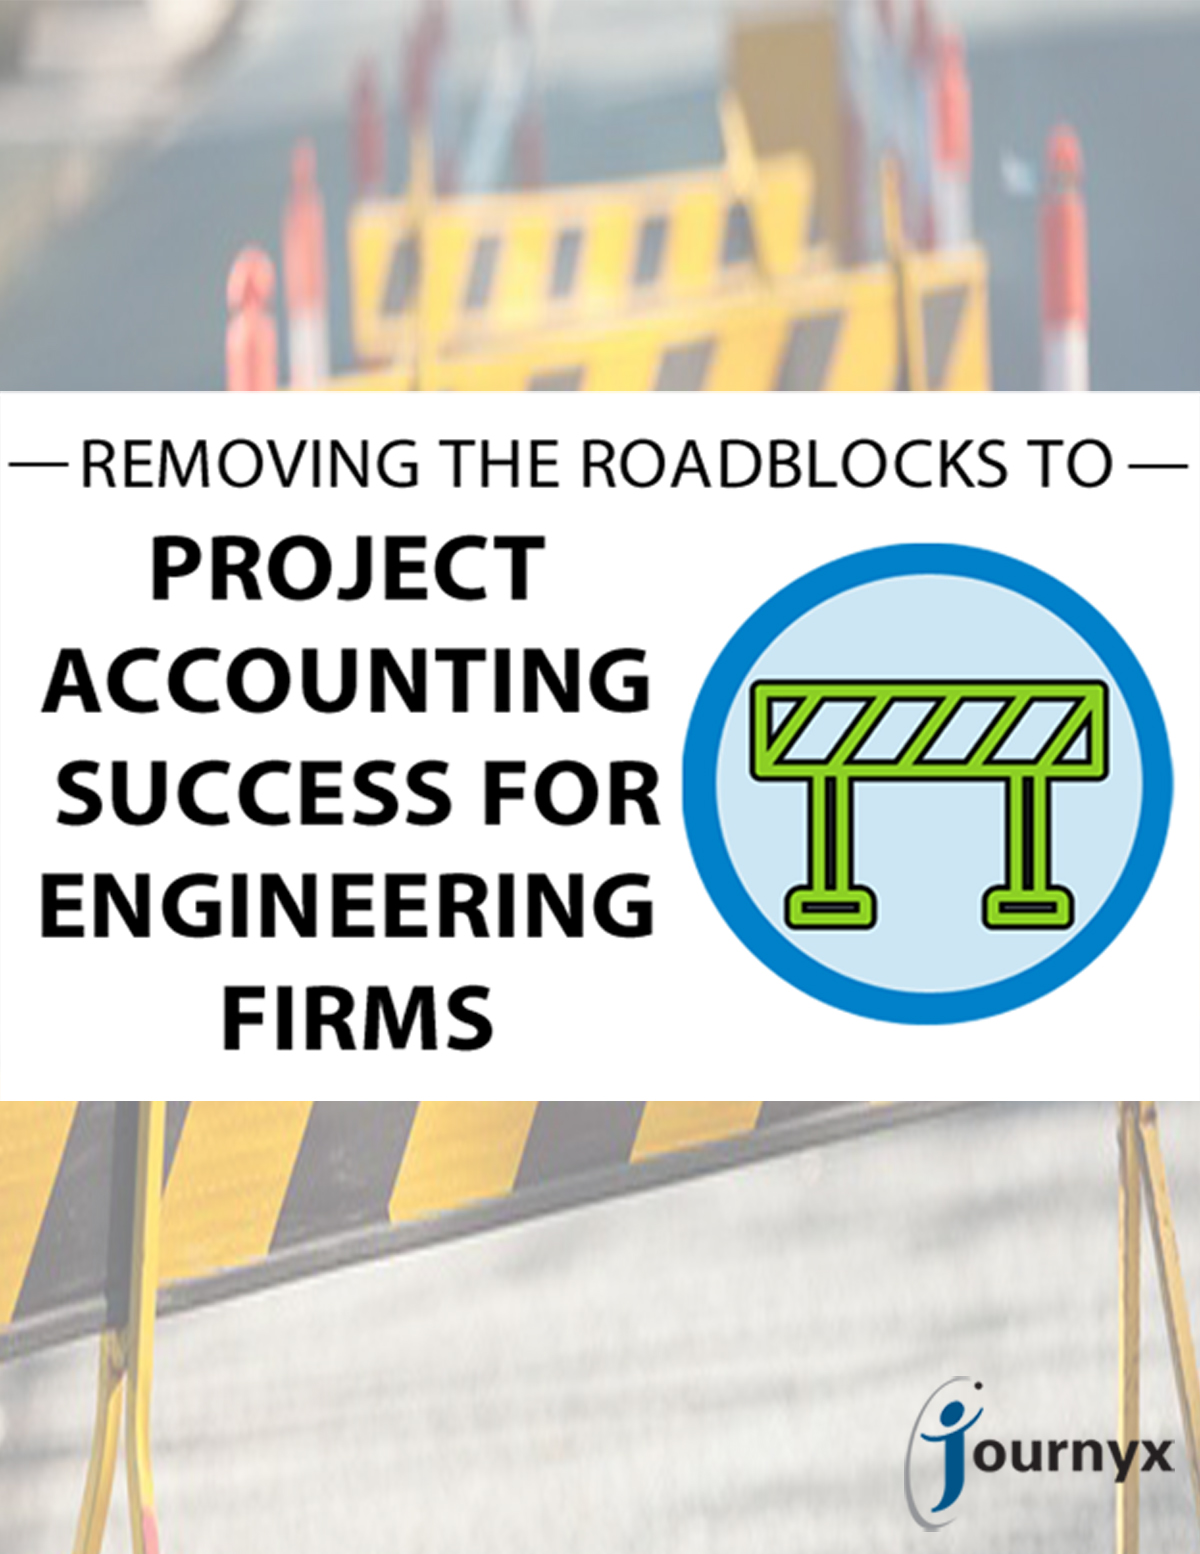 project accounting success for engineering firms graphic